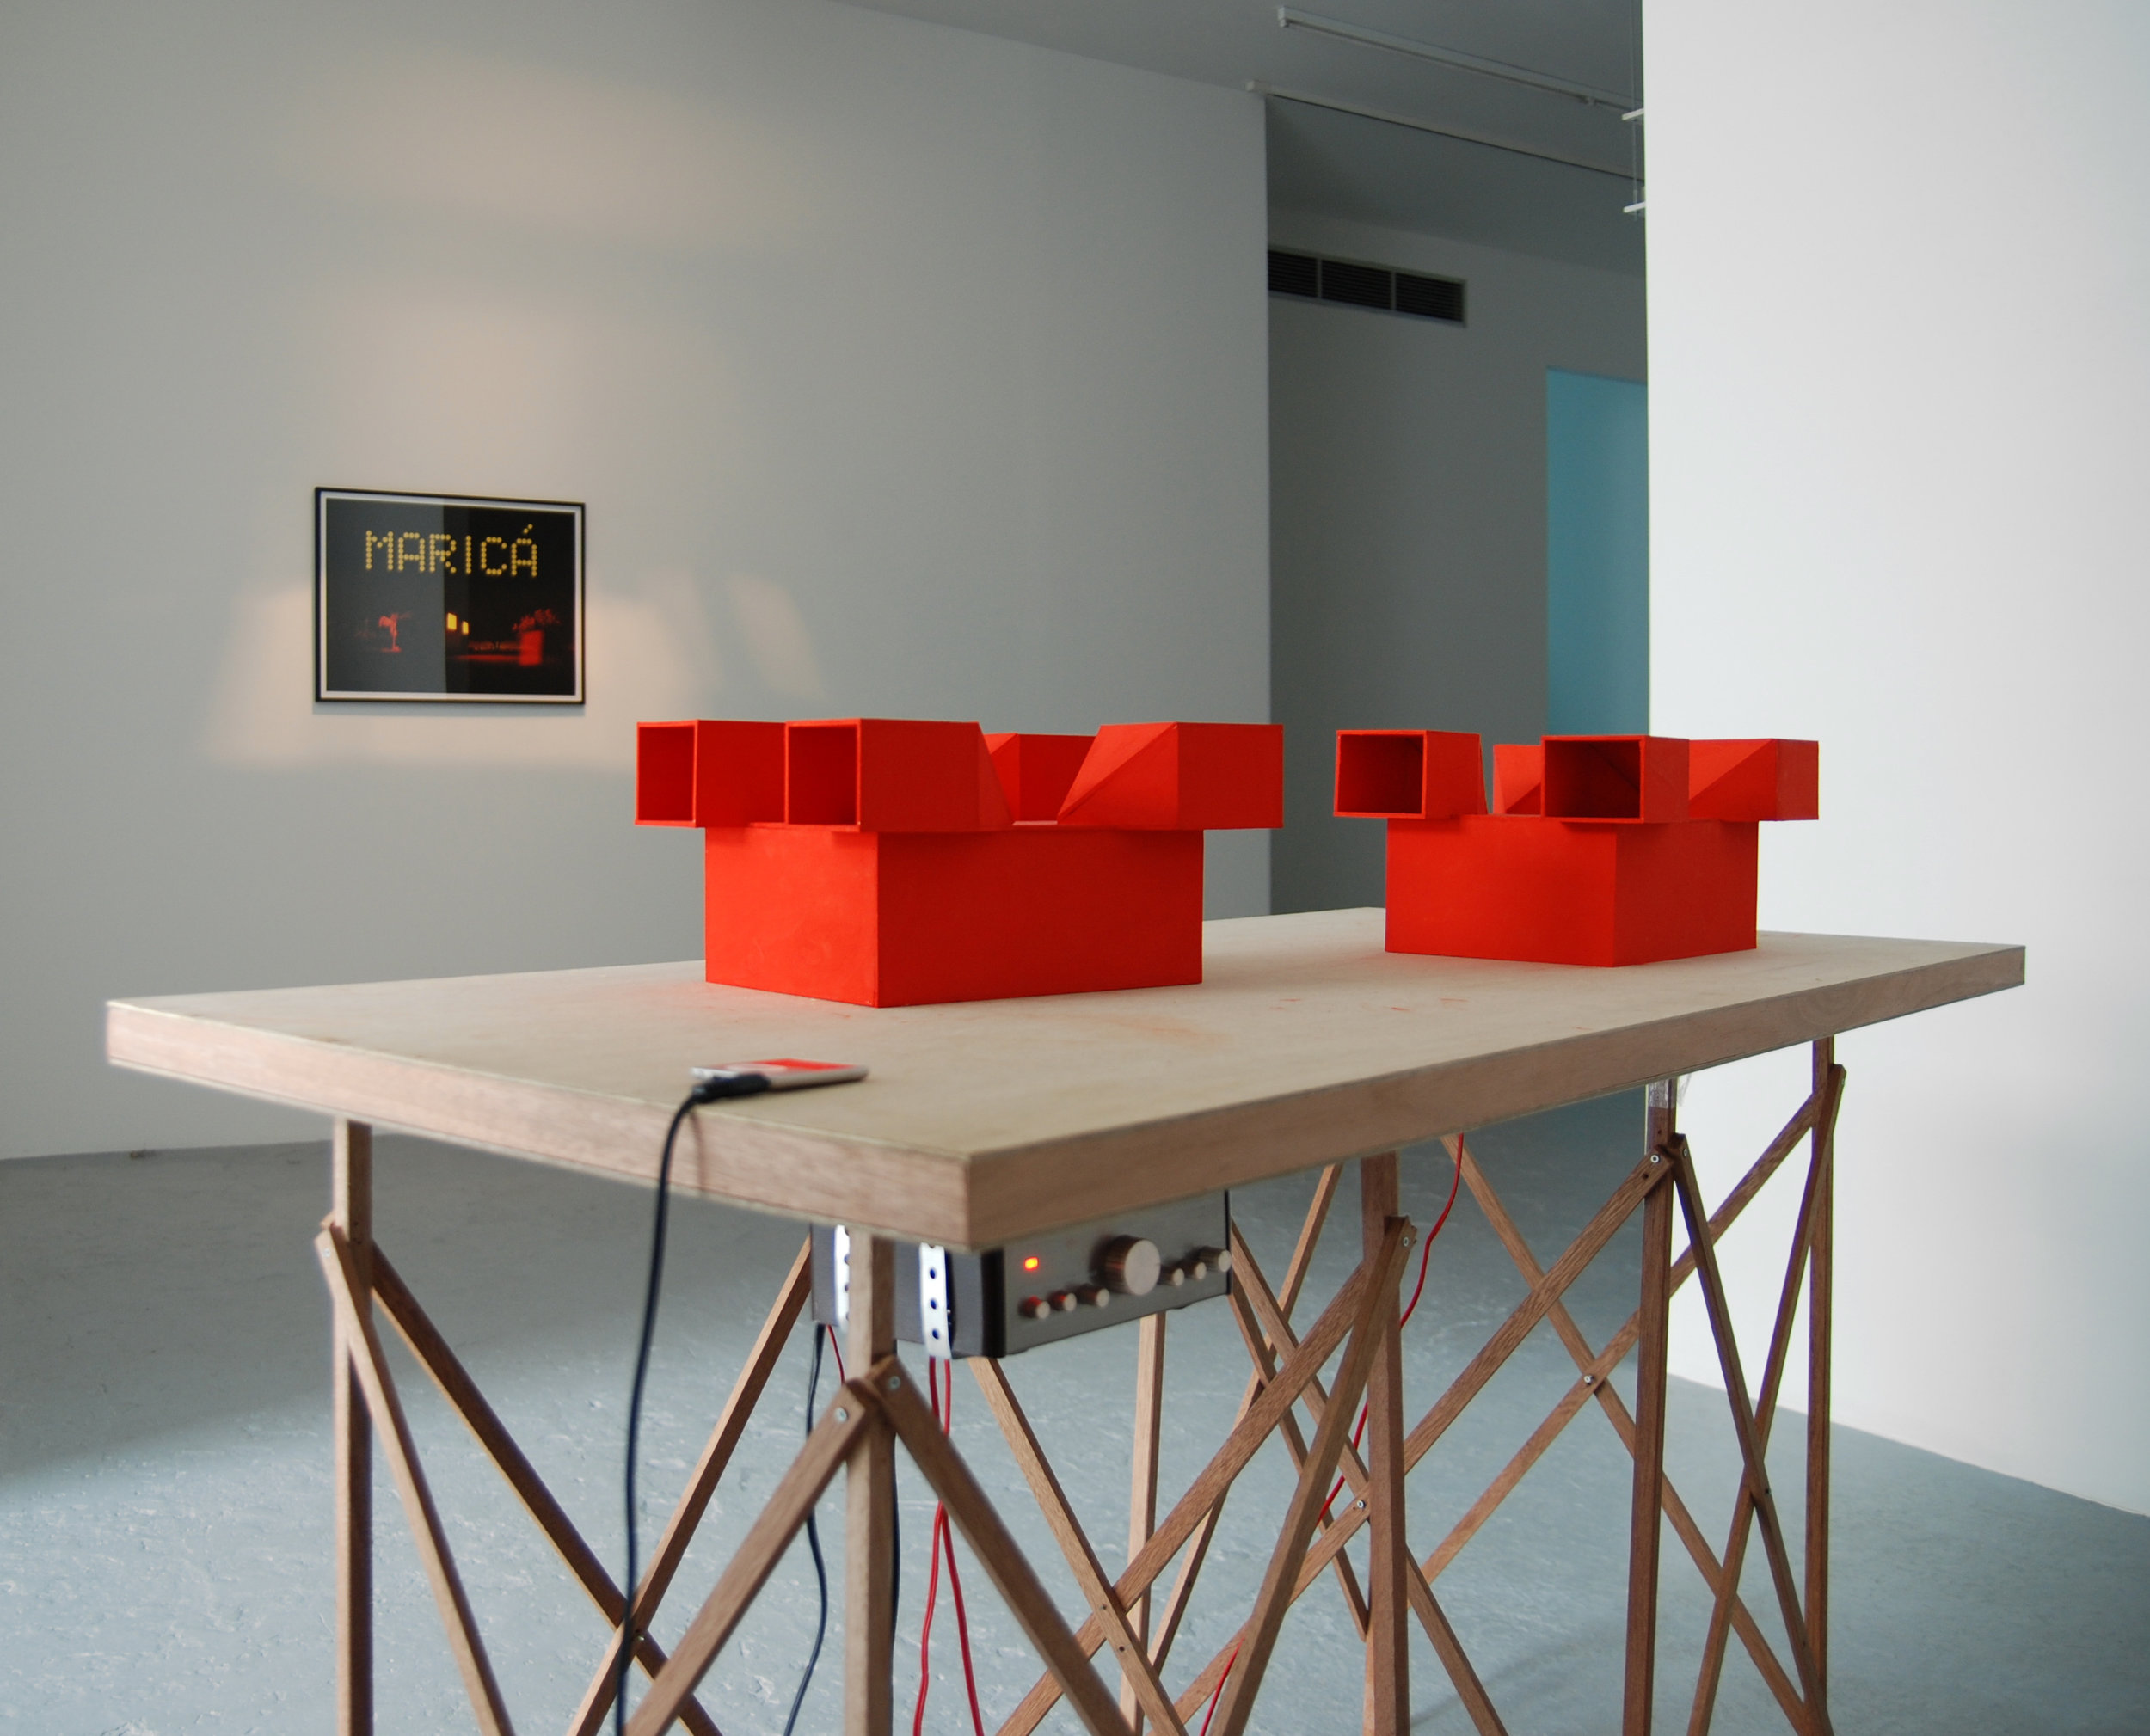 Jean-Pascal Flavien,  Discussion,  2007, Table, cardboard models, speakers, ipod, sound,105 x 150 x 70 cm, exhibition view, Catherine Bastide, Brussels, 2007